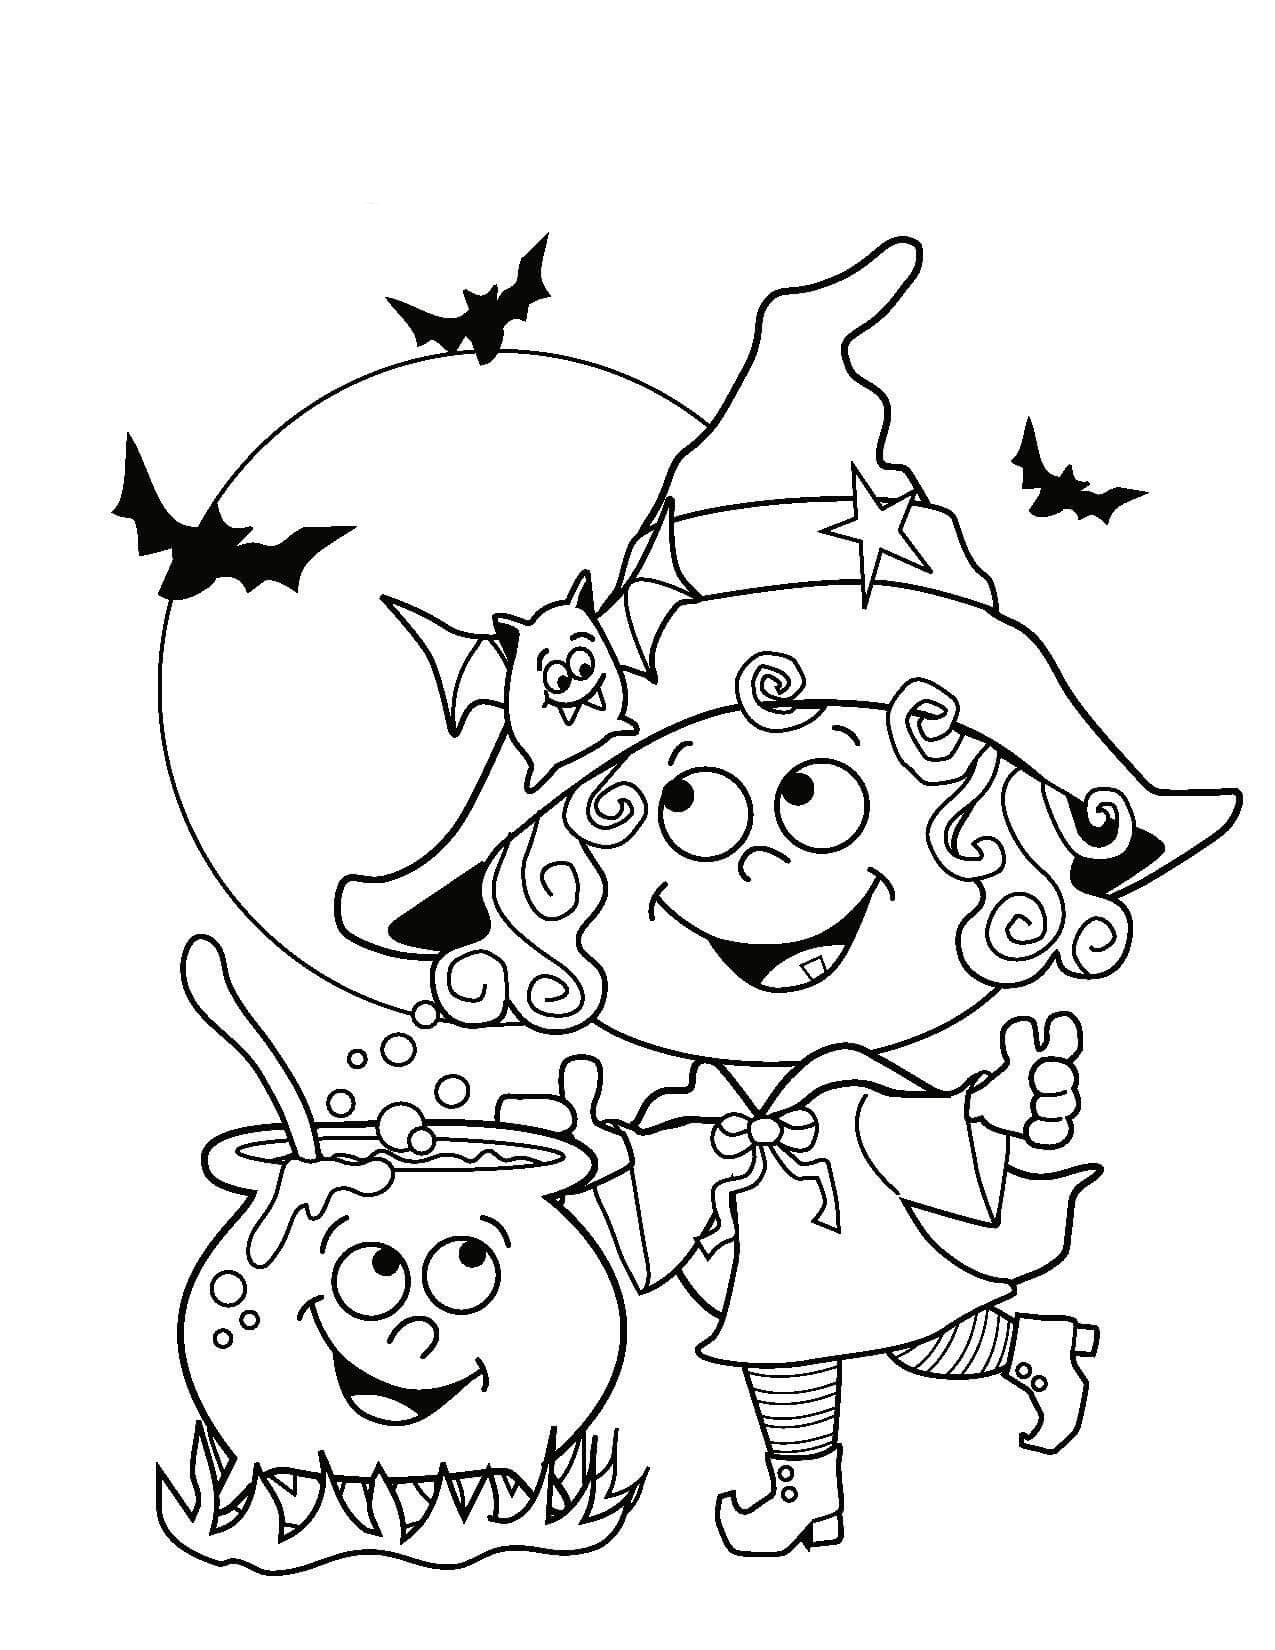 Cute Halloween Coloring Pages - Best Coloring Pages For Kids